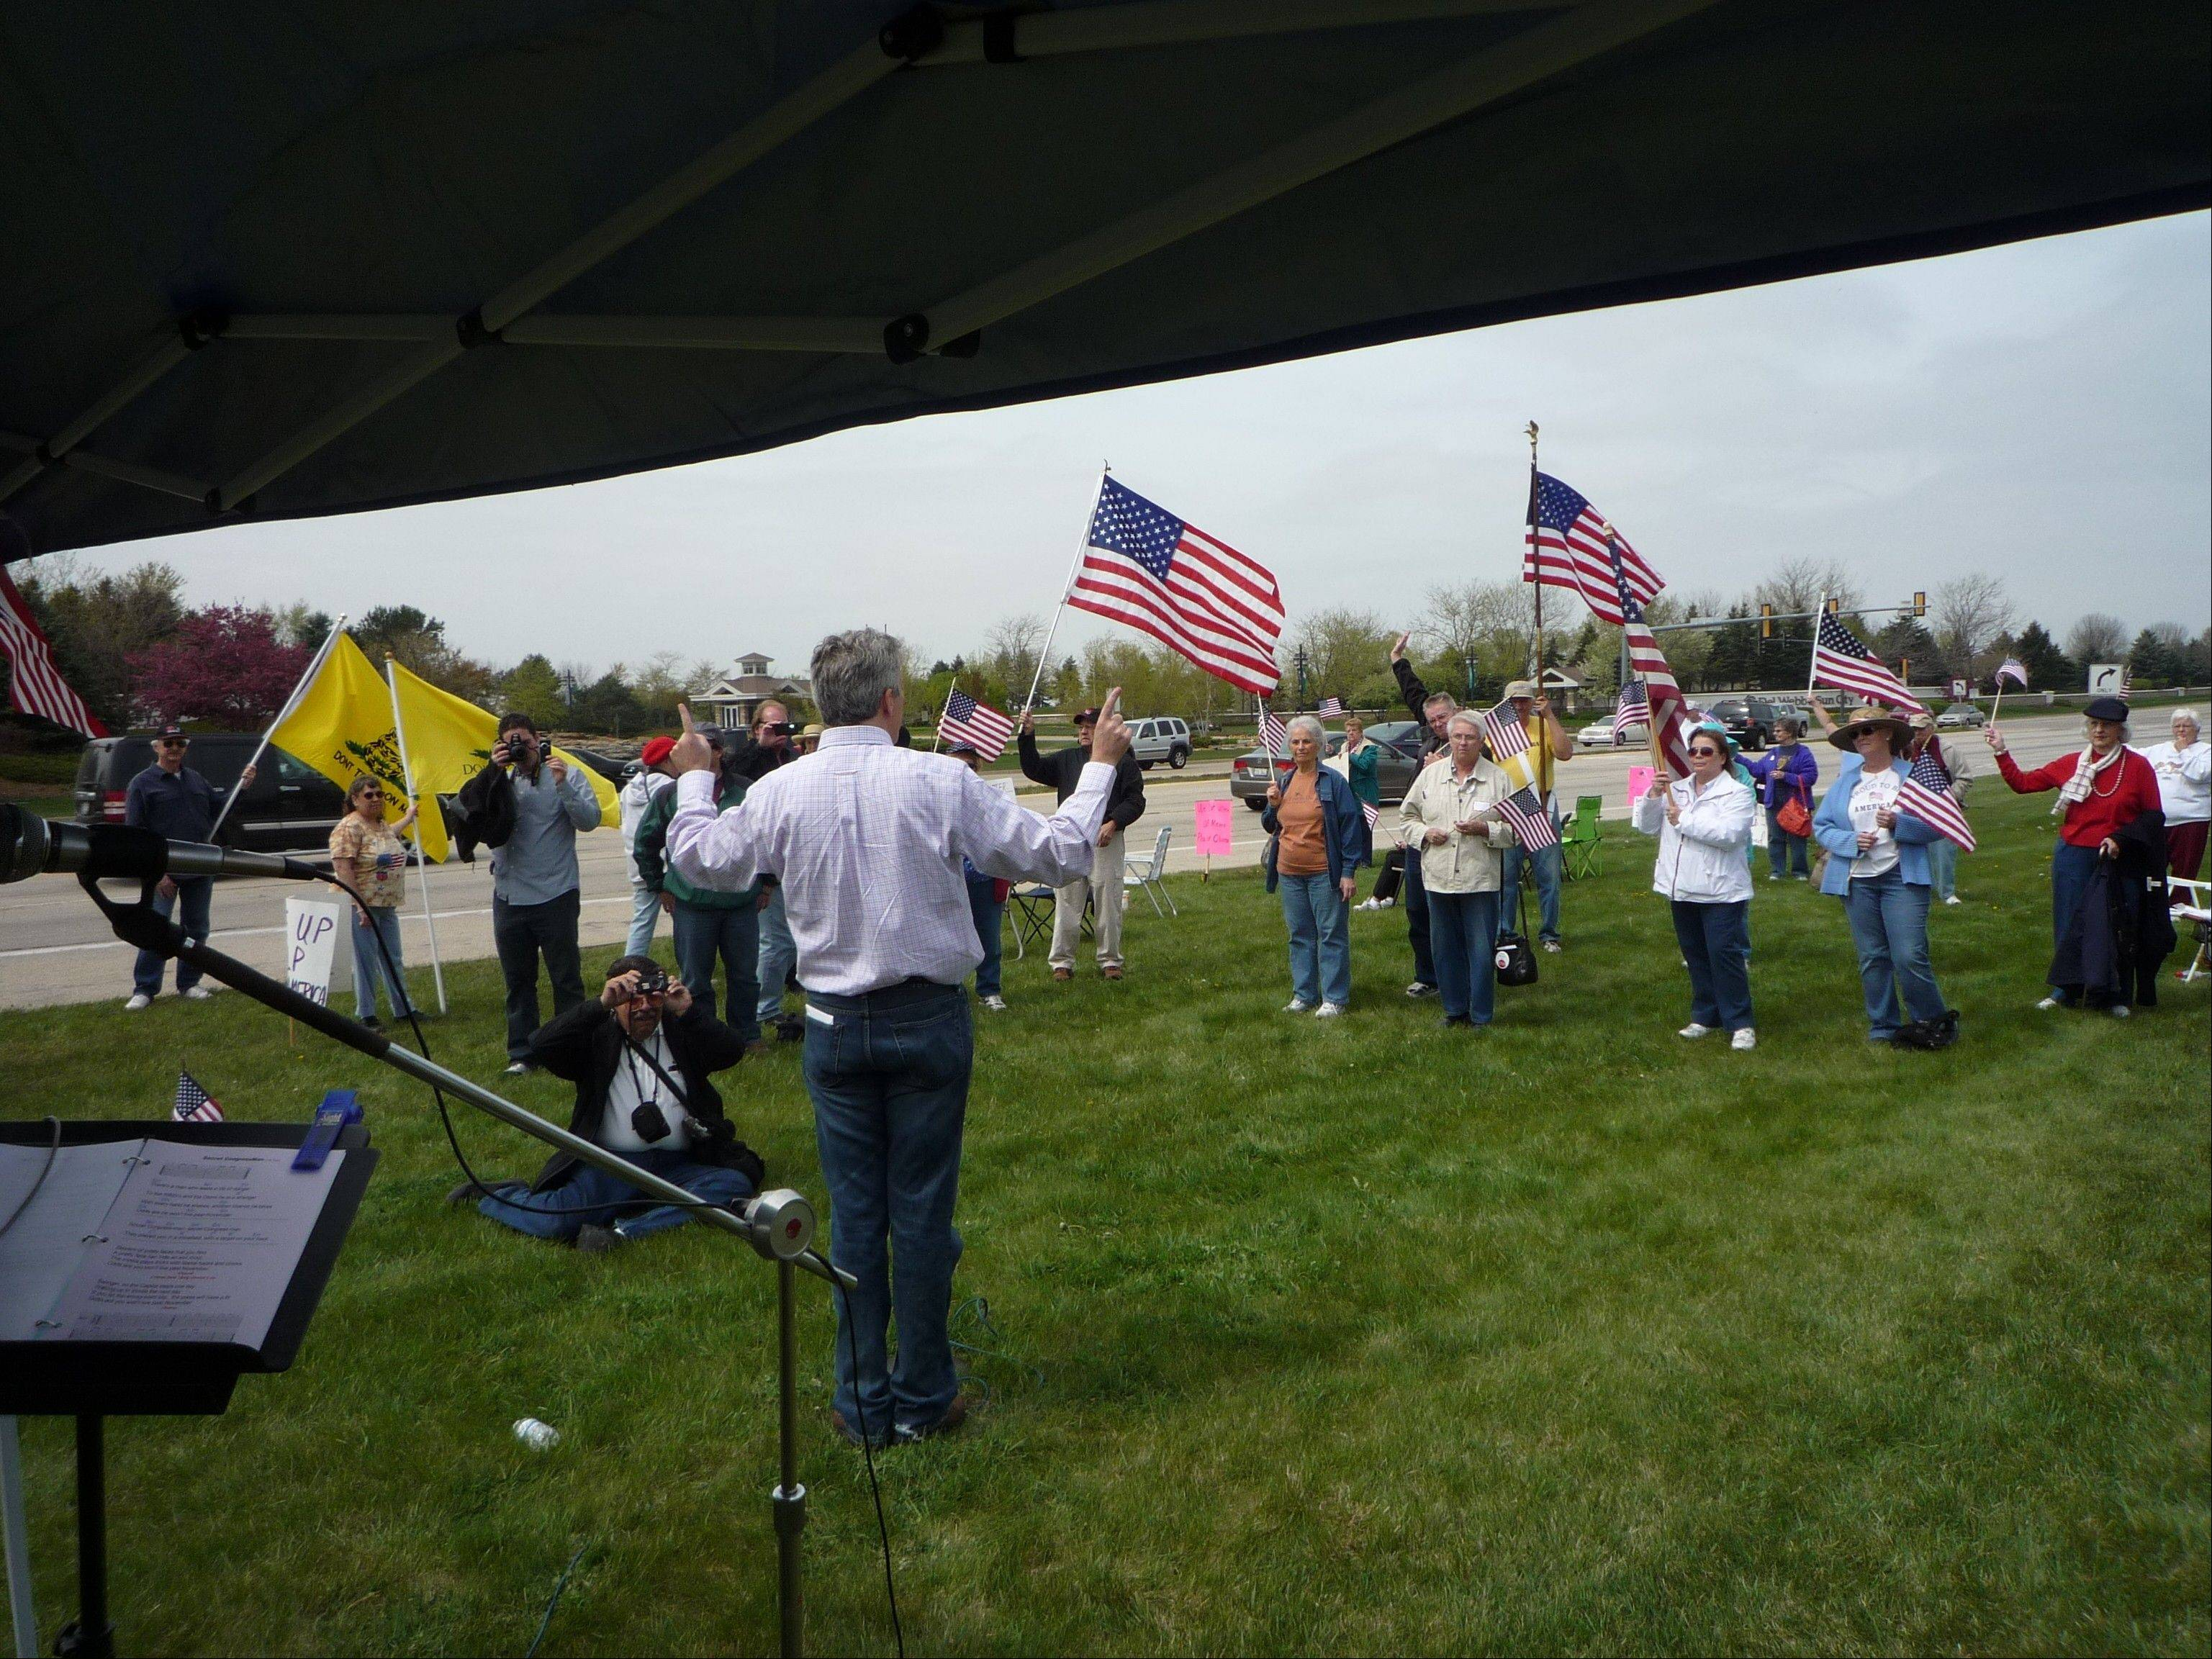 Congressman Joe Walsh welcomes a group of loyal Tea Party supporters during a rally Saturday in Huntley.